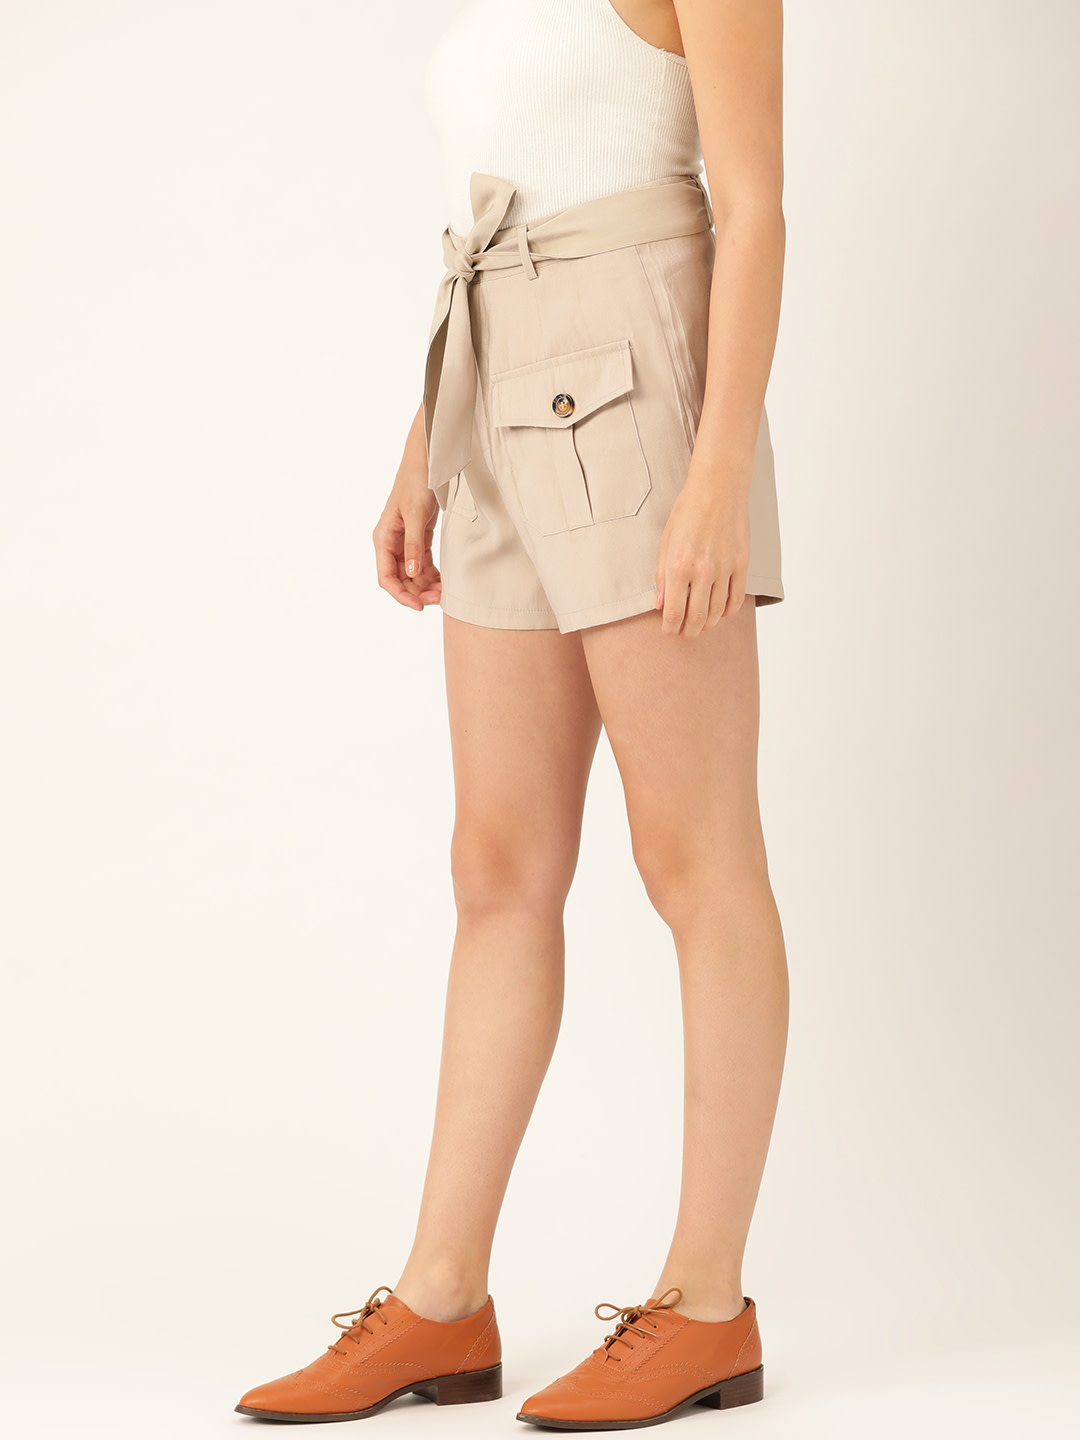 Shorts and Skirts-Beige Safari Bug Shorts2